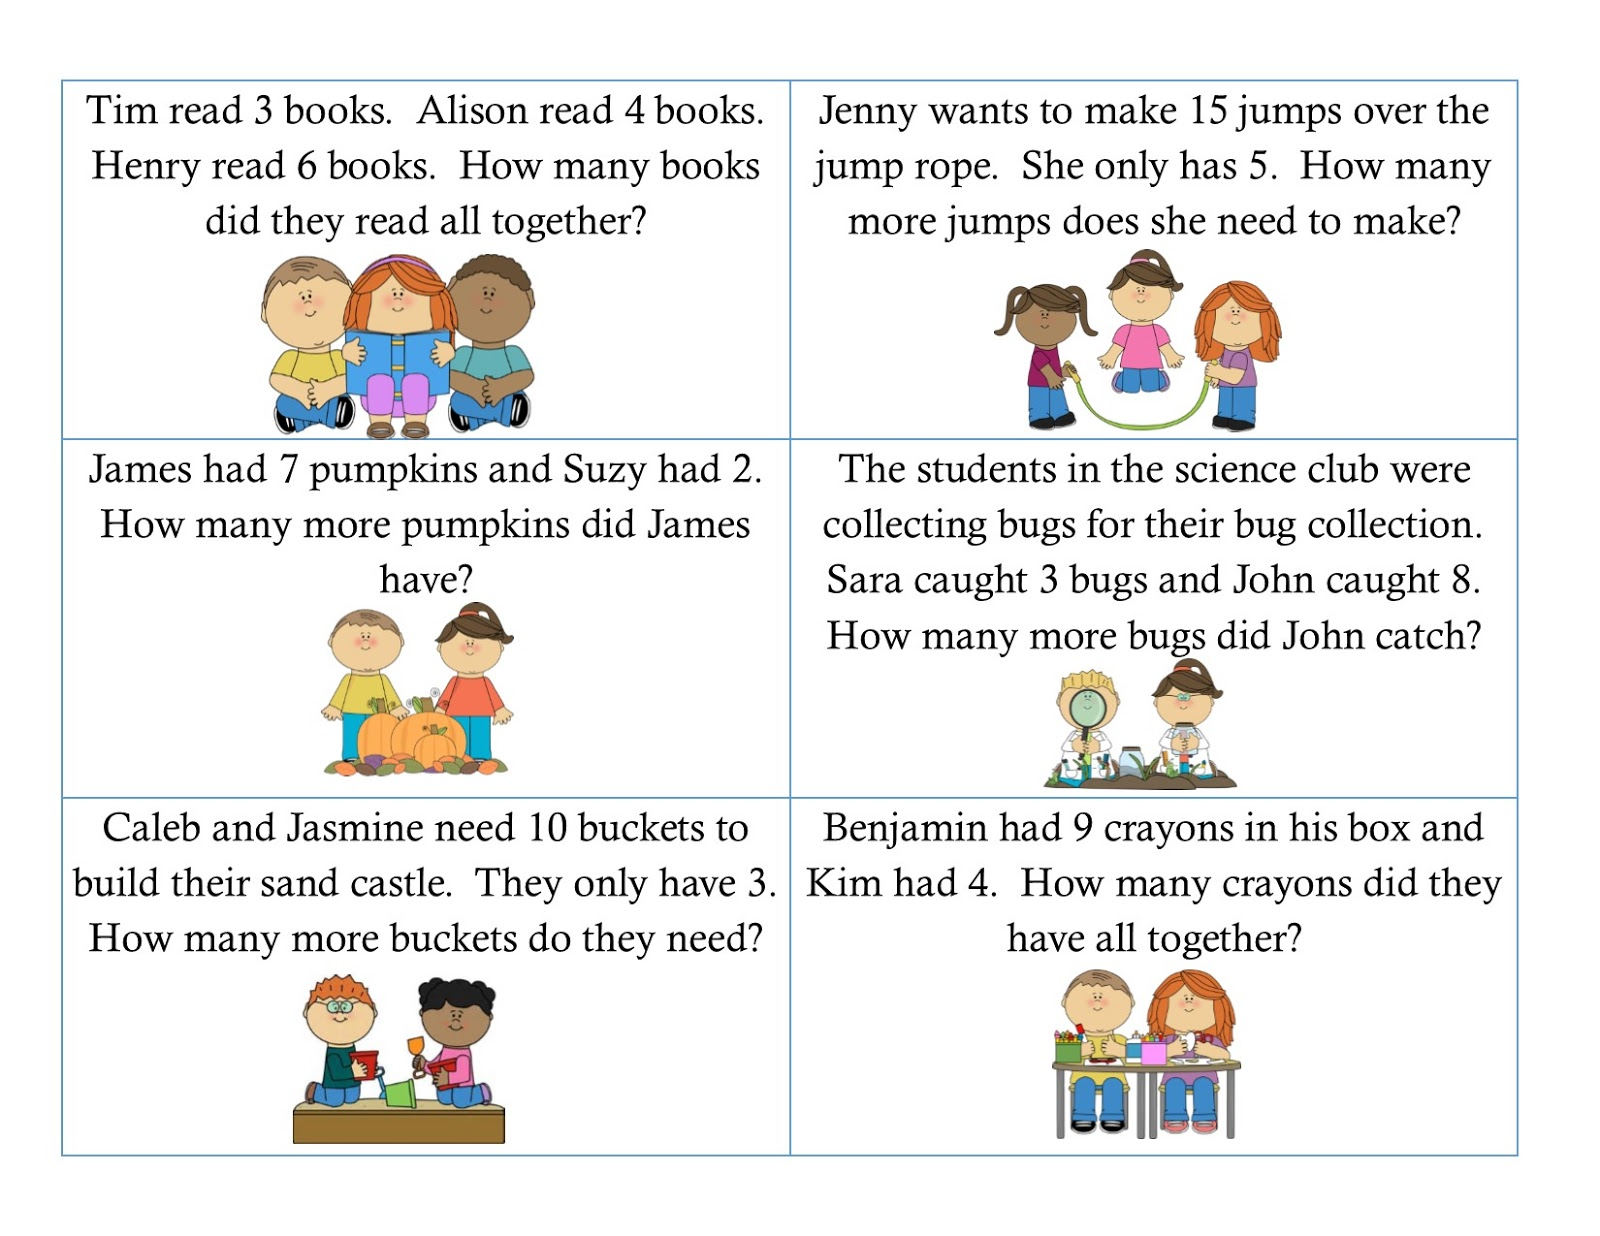 Worksheet Word Problems For Subtraction oh the thinks you can think mighty math monday word problems to use addition and subtraction skills correlate marksdots with numbers help solve problem materials problem